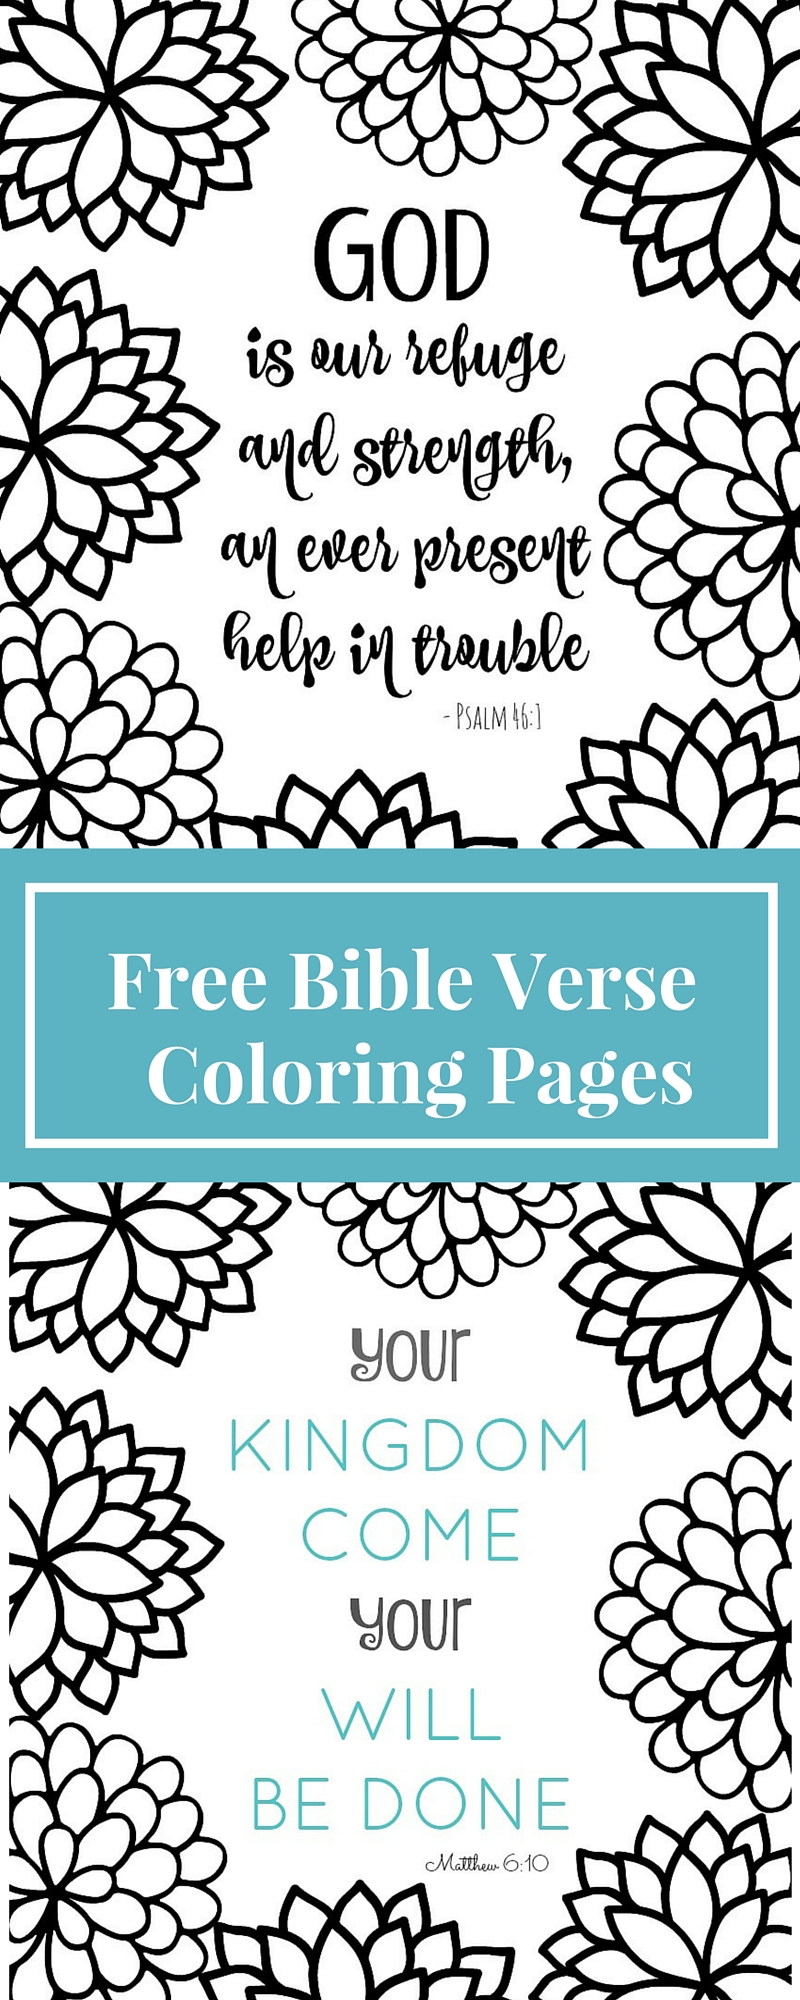 free bible coloring book pages - photo#12